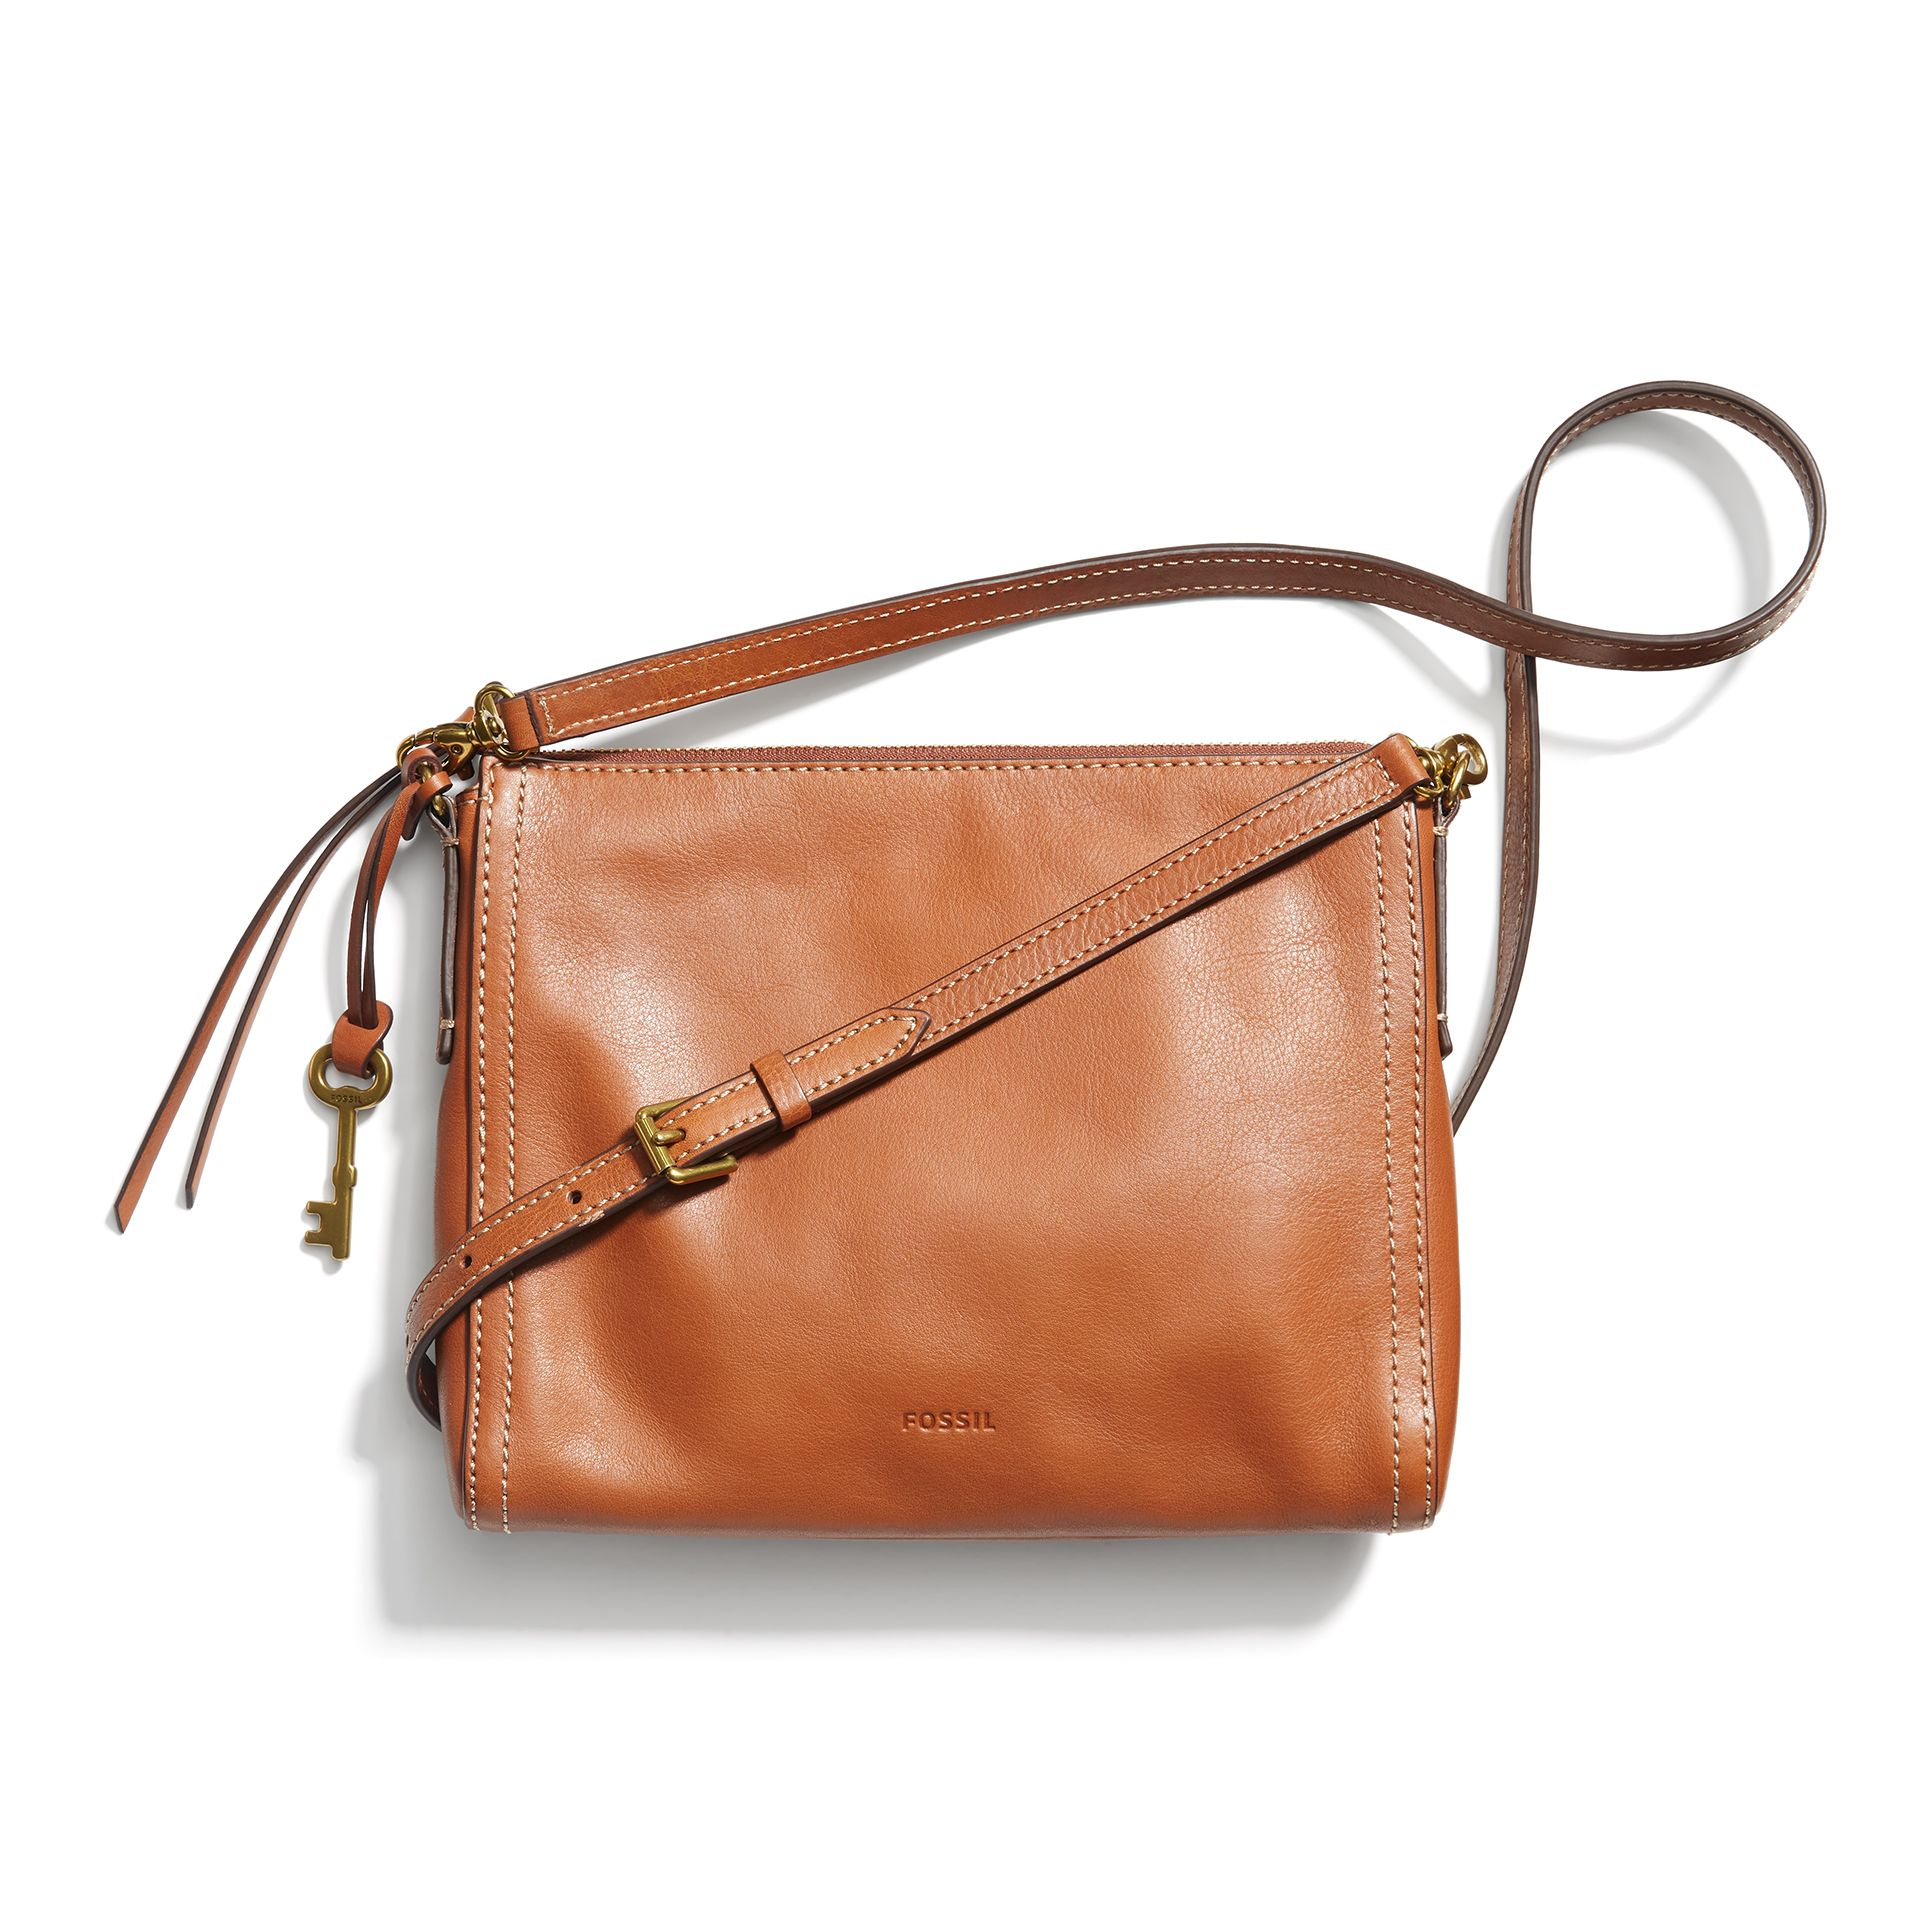 037fabdf6f Stitch Fix Spring Must-Haves  Leather Cross-body Bag